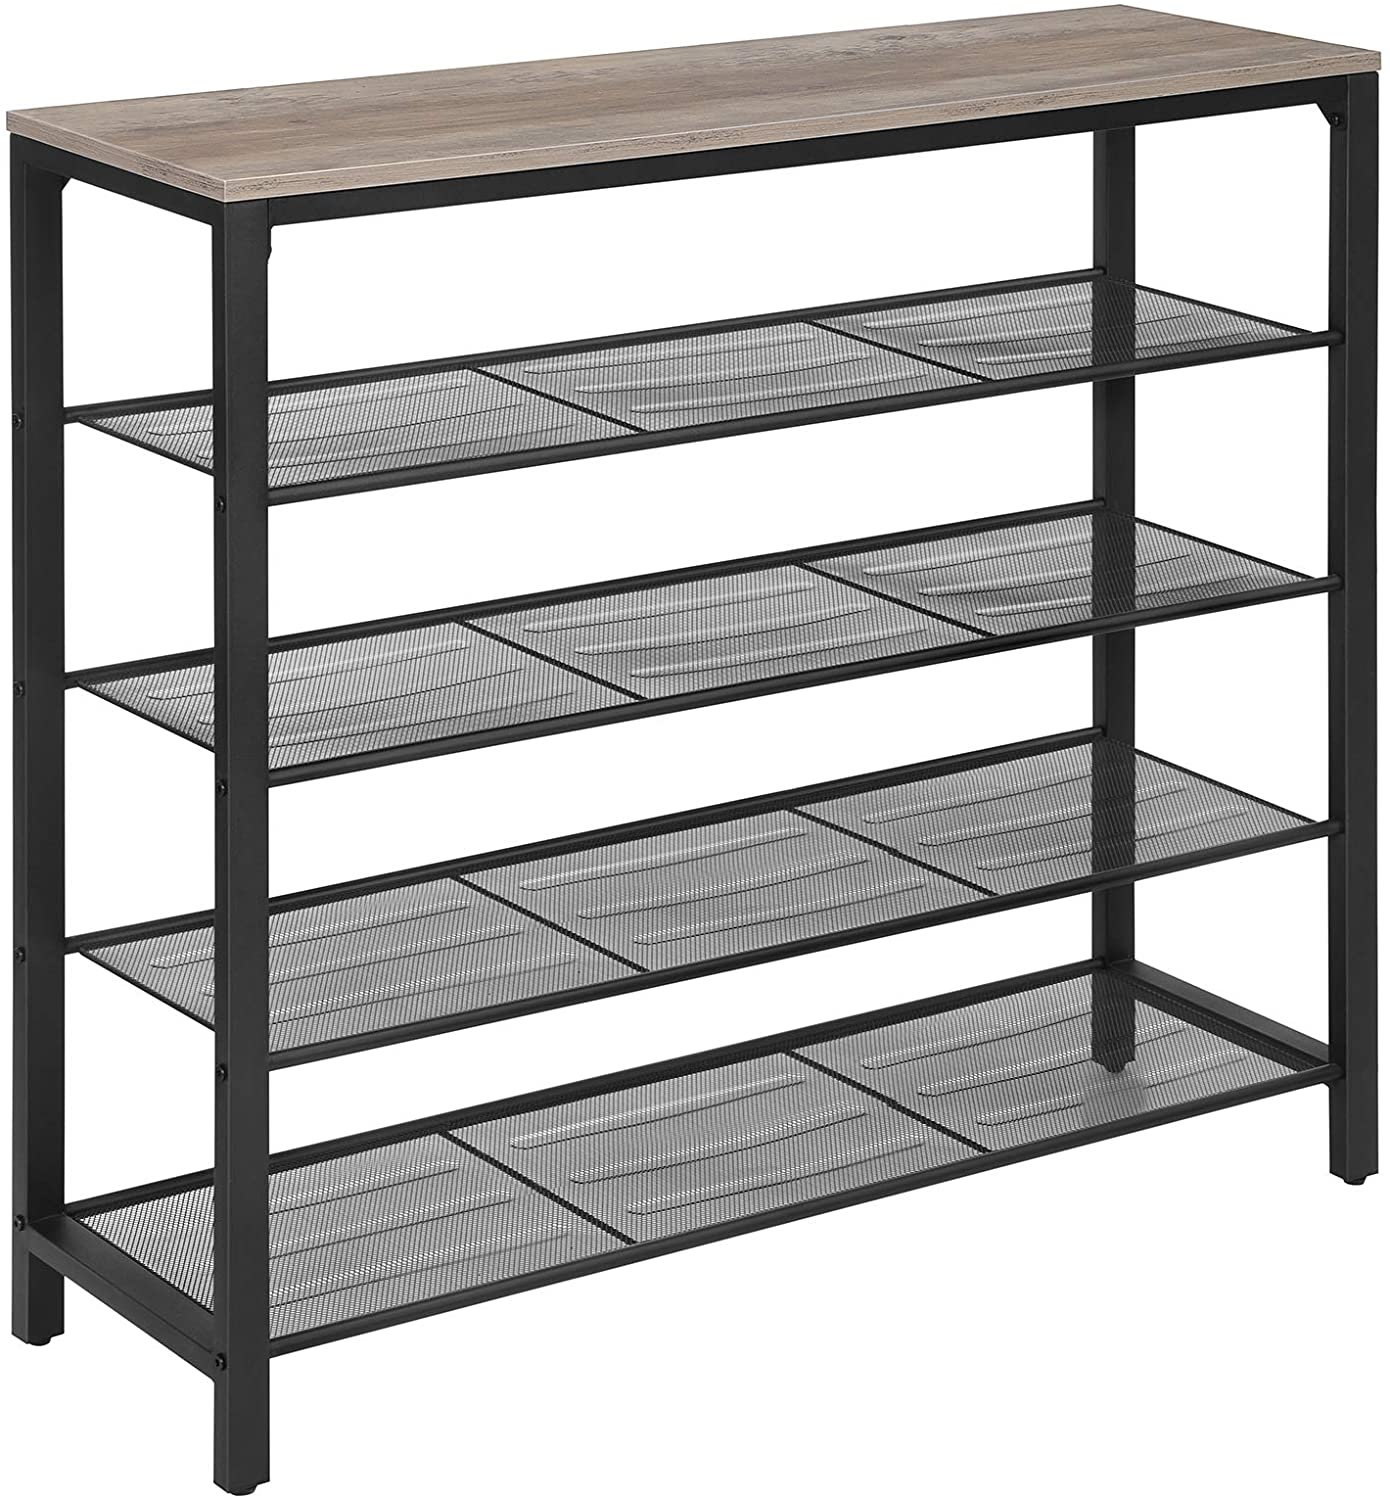 Enjoy fast, free nationwide shipping!  Owned by a husband and wife team of high-school music teachers, HawkinsWoodshop.com is your one stop shop for affordable furniture.  Shop HawkinsWoodshop.com for solid wood & metal modern, traditional, contemporary, industrial, custom, rustic, and farmhouse furniture including our Greige & Black Shoe Rack.